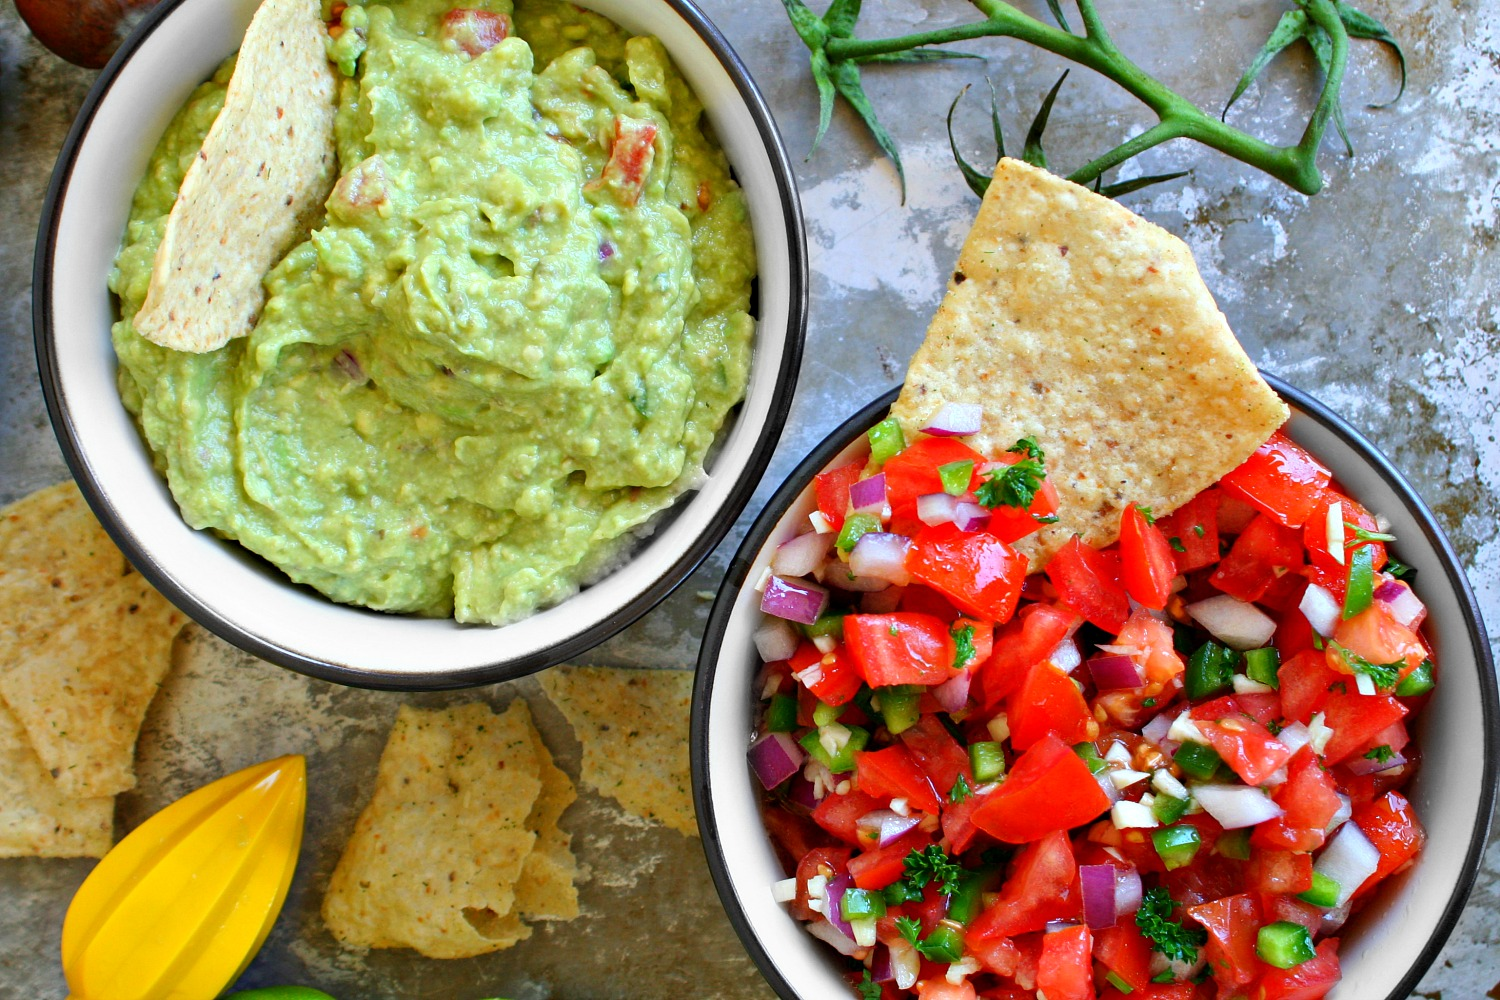 If you're looking for a fresh and flavorful salsa, this recipe is an excellent choice. The combination of diced tomatoes, peppers, garlic, and lime juice make for a classic fresh salsa.4/5(97).